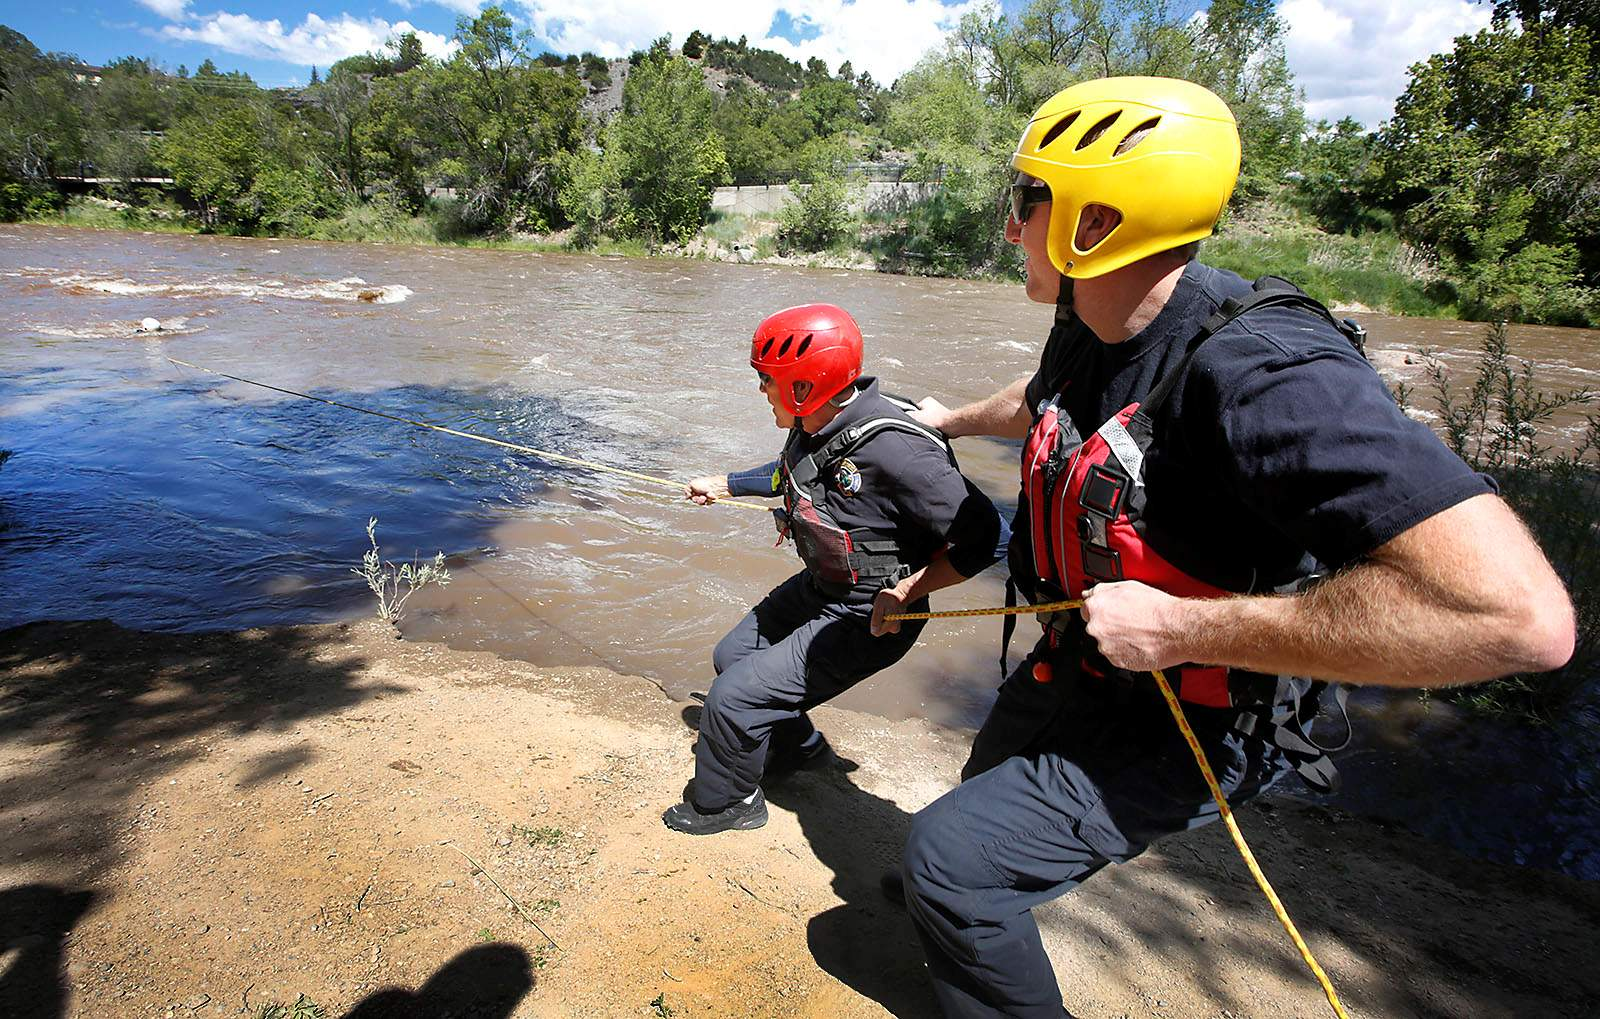 Swiftwater rescue team enters its busy season